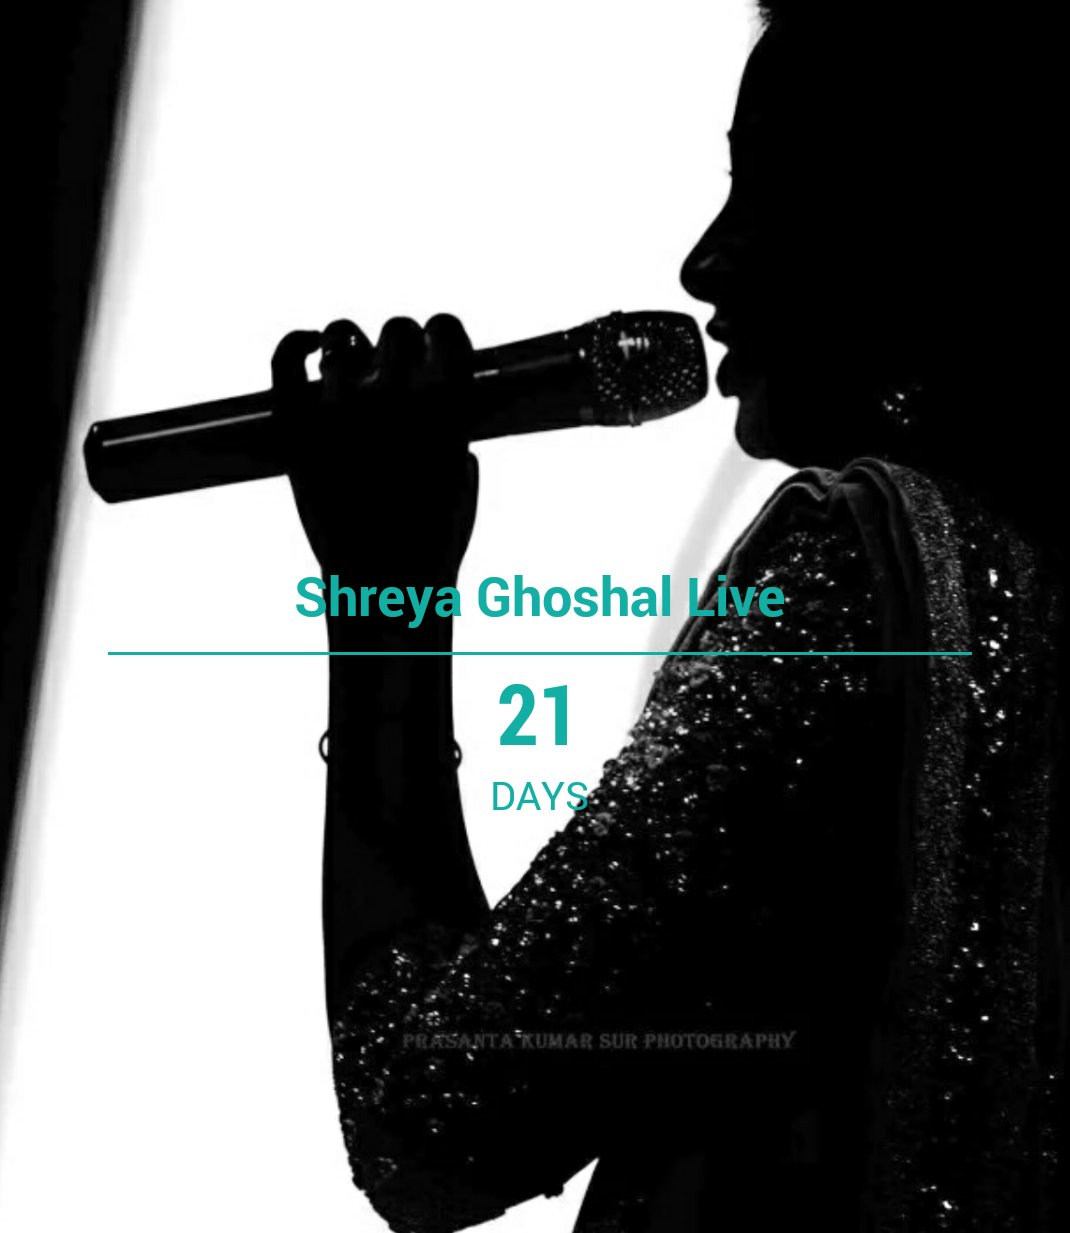 @shreyaghoshal #21days #ToGo #ShreyaGhoshalLive #Chennai #5March 🎉🎊😍 https://t.co/3wkNCsNLV6